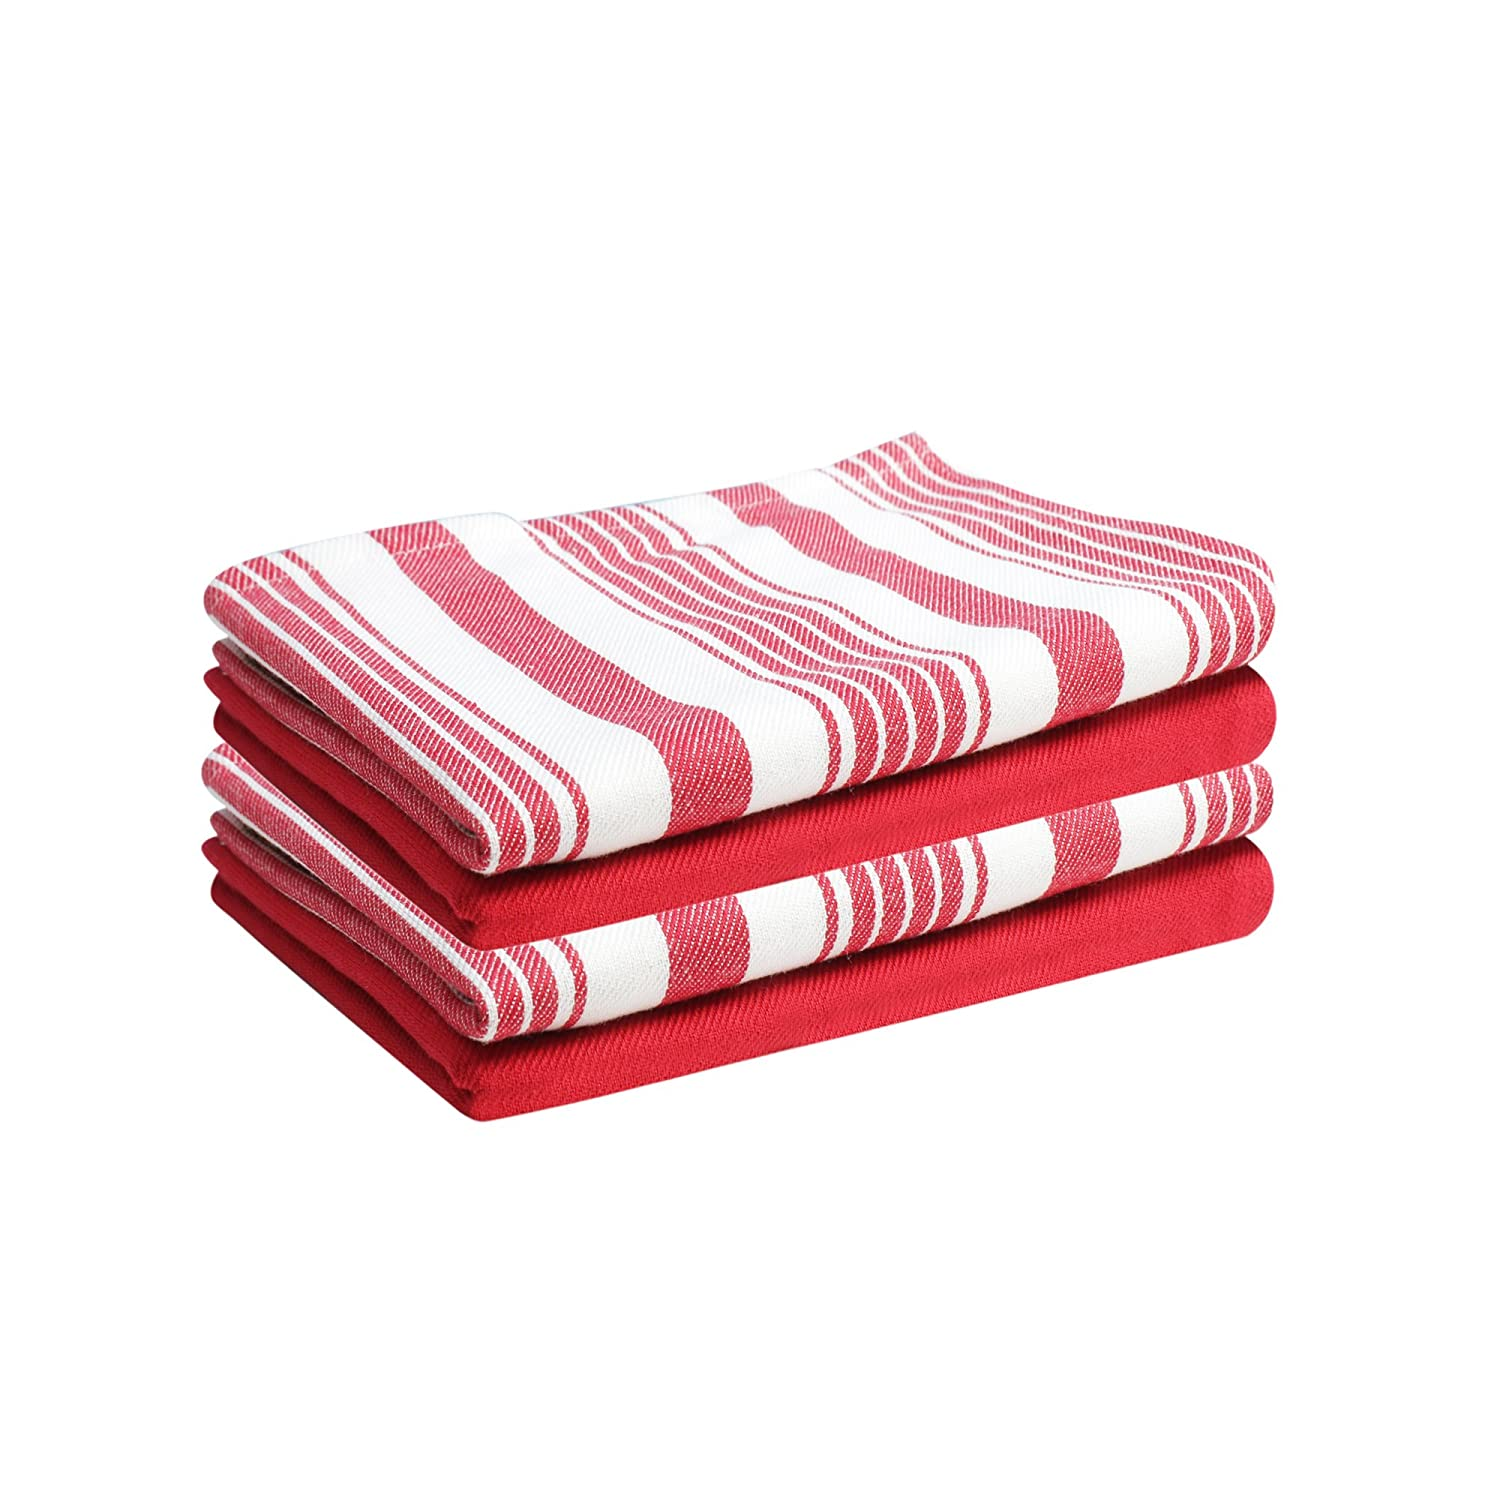 """Set of 4 Kitchen Towels, Stripes & Solid, 100% Cotton, Eco Friendly and Safe, Suitable for All Kitchens, Red/White Color, Size 18""""X26"""" Product of Cote De Amor"""